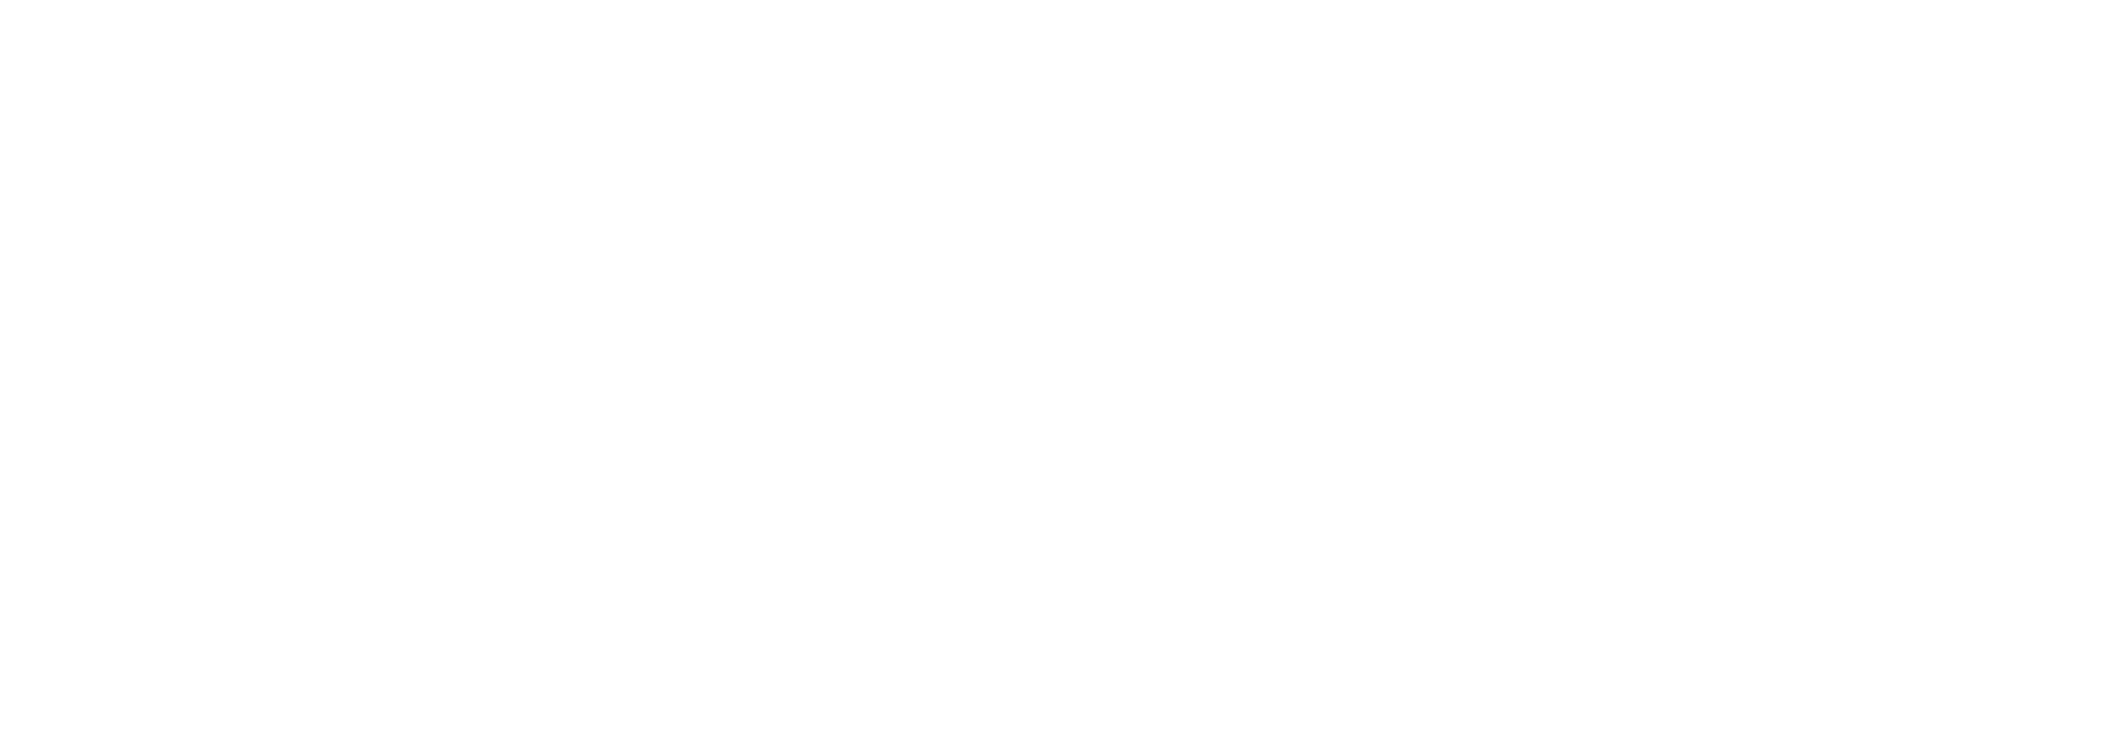 magicad_logo_horizontal_white